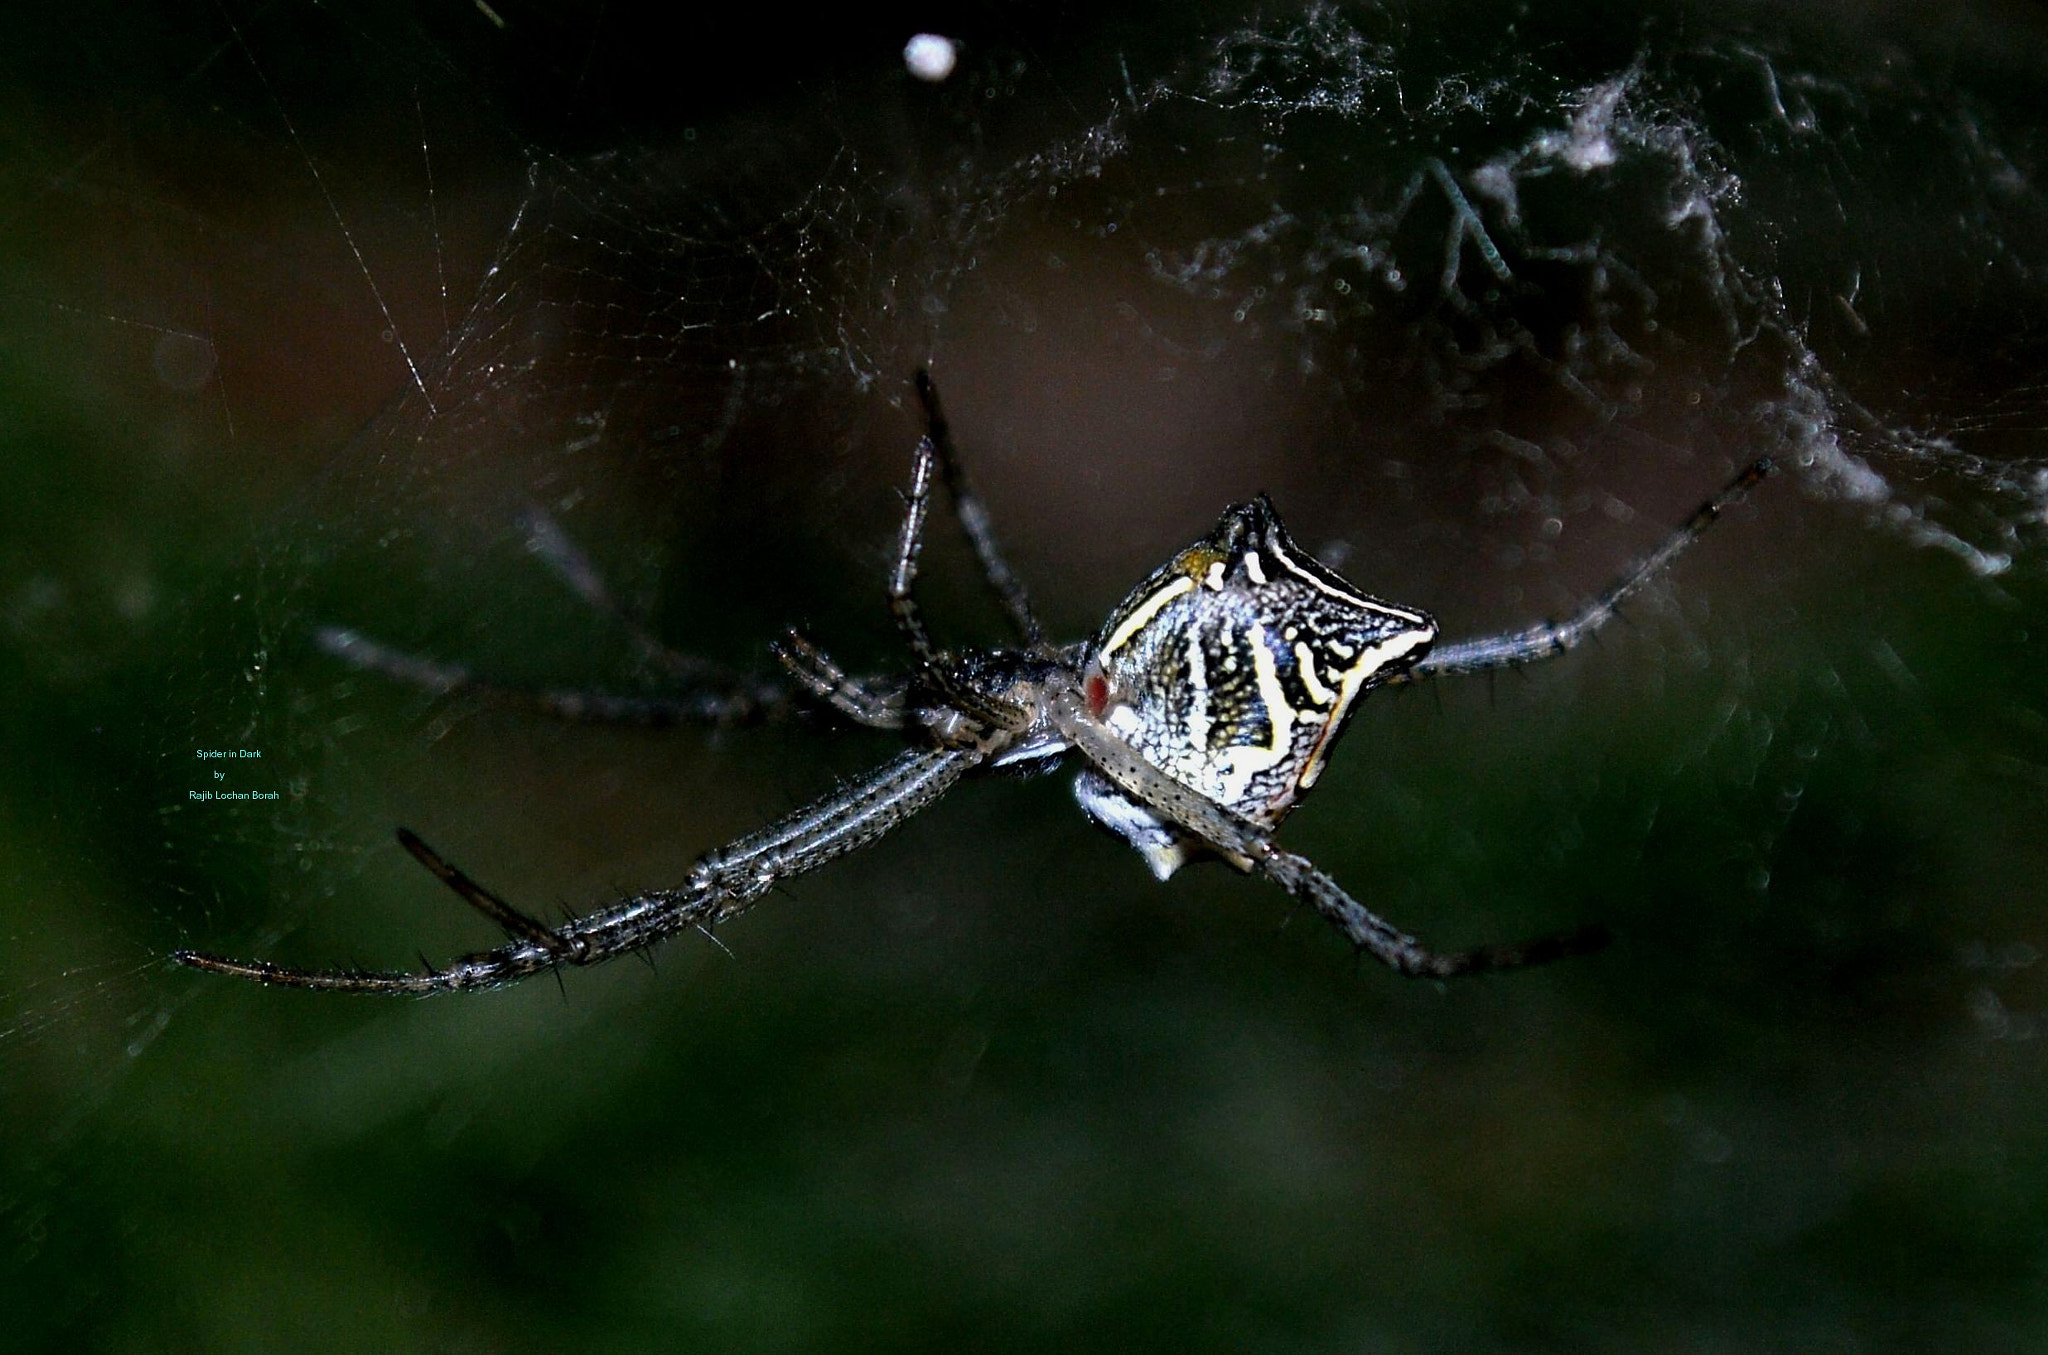 Photograph A spider in darkness by rajib borah on 500px